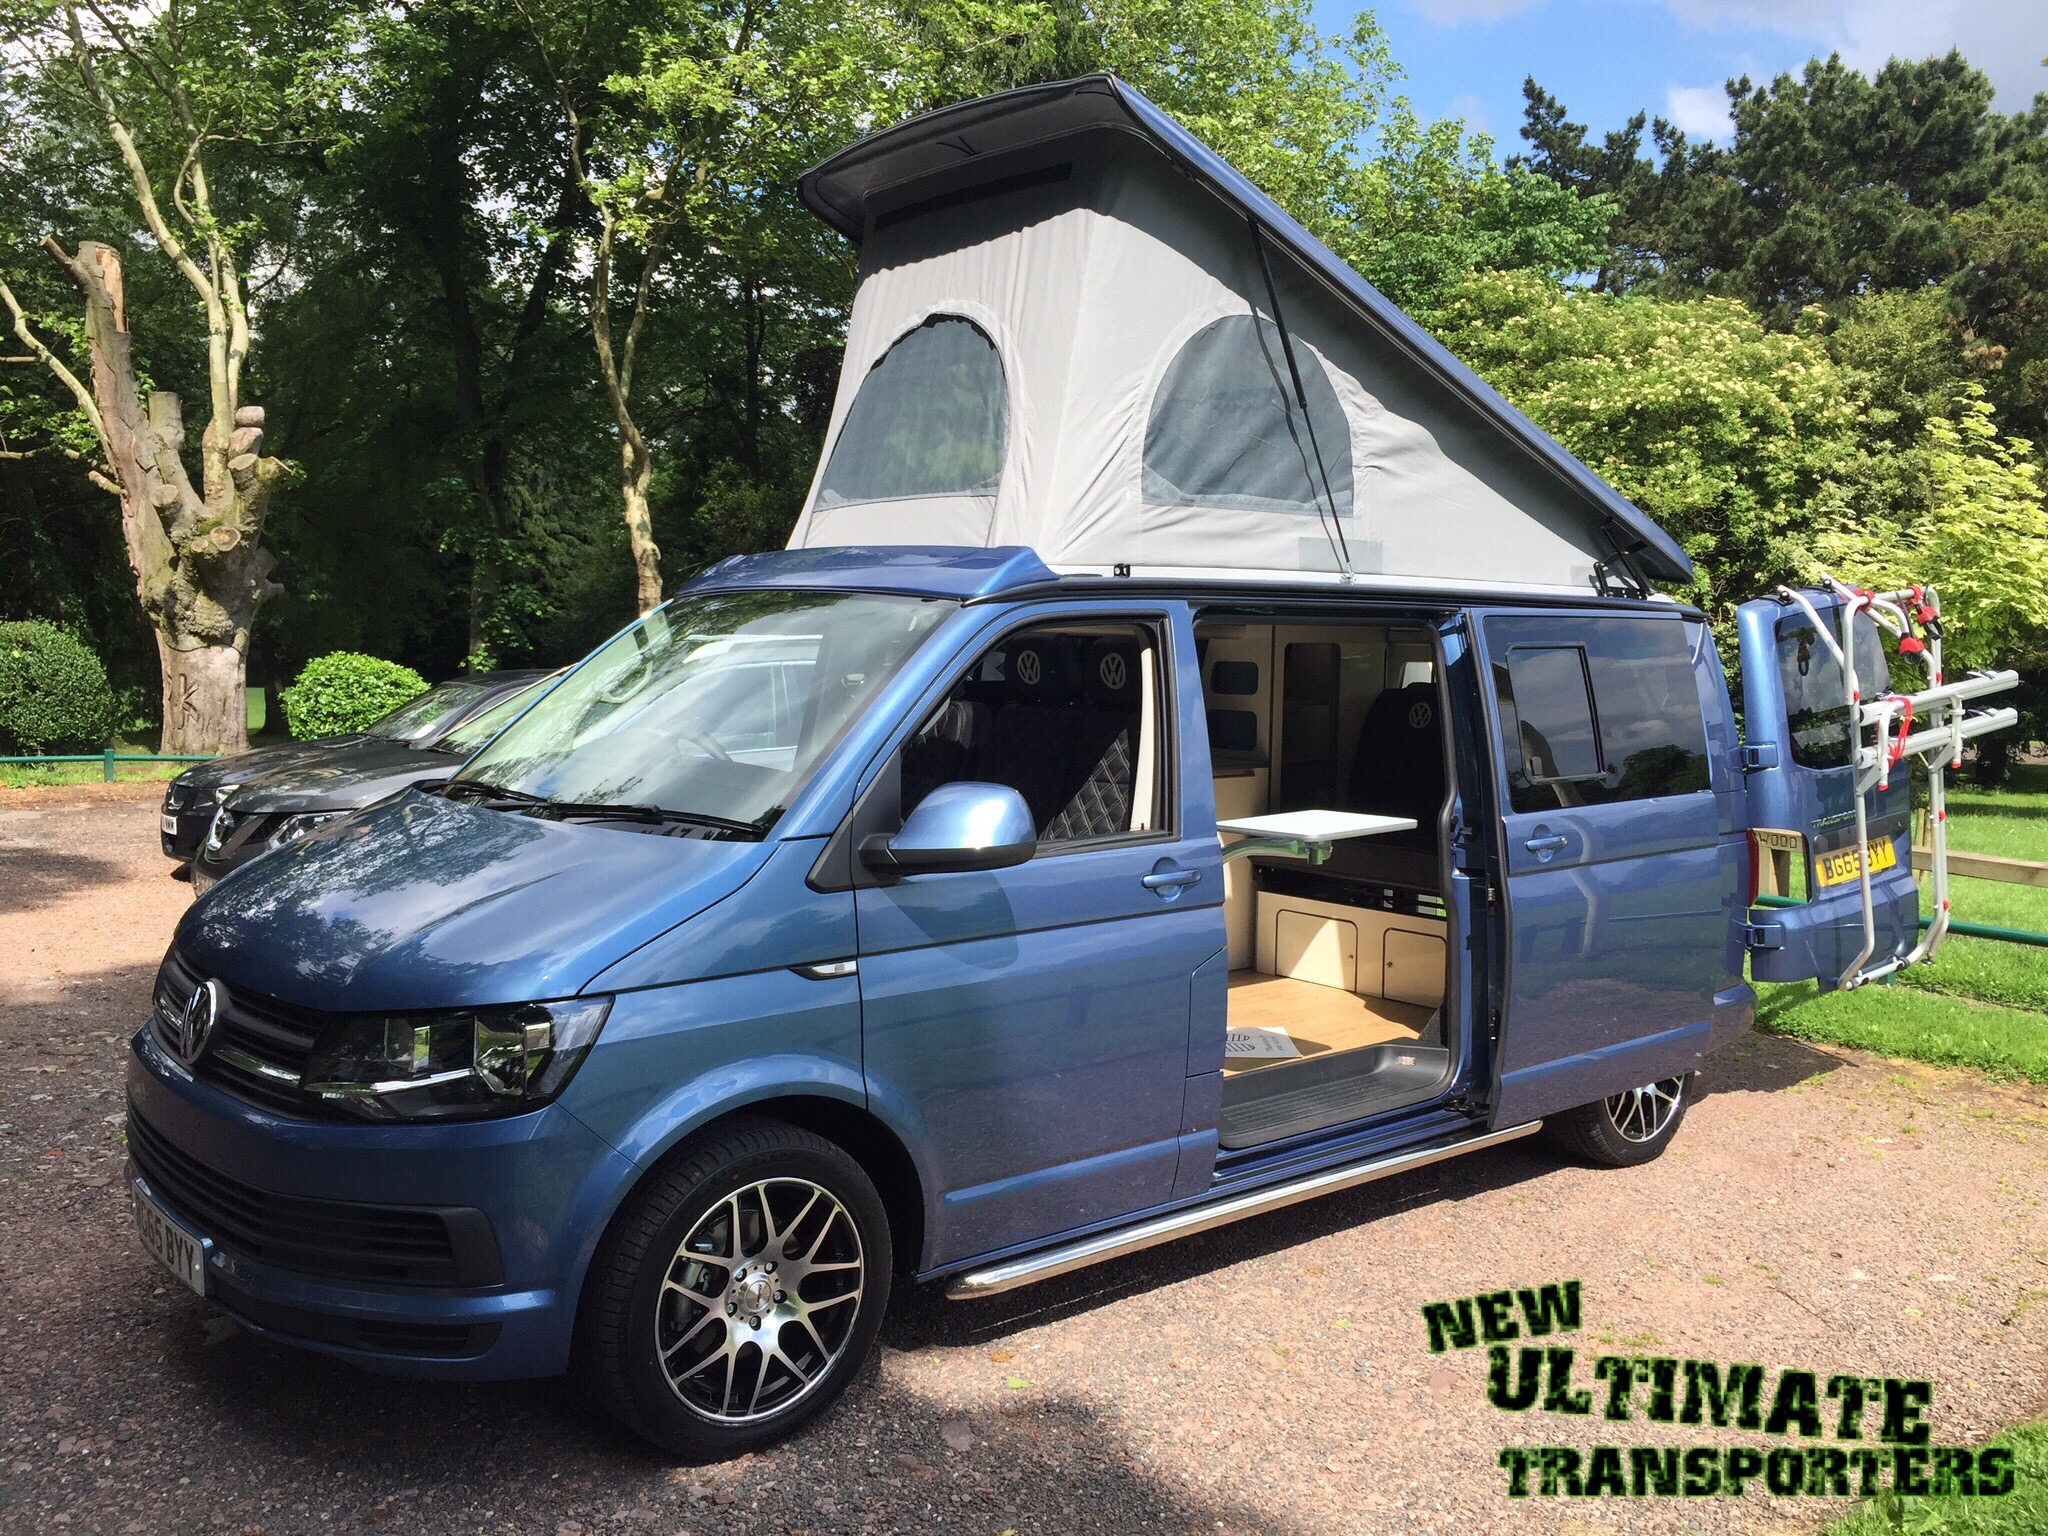 vw t6 blue camper conversion new ultimate transporters. Black Bedroom Furniture Sets. Home Design Ideas